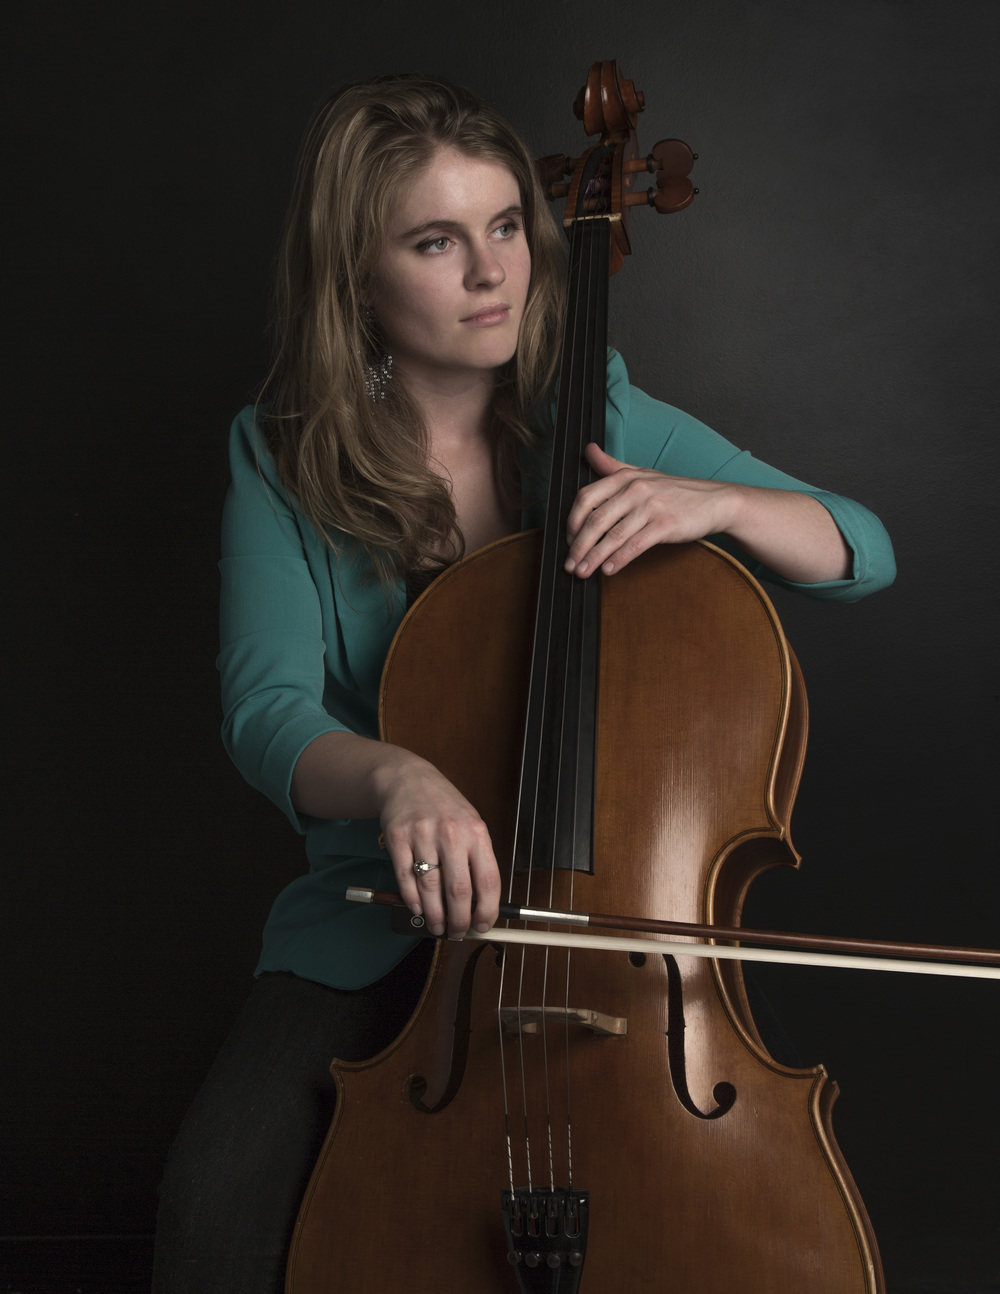 Nadine Sherman Cello Nadine completed her Bachelors of Music degree in cello performance at the Eastman School of Music in May 2014 and currently works as a freelance cellist and professional photographer in Rochester.